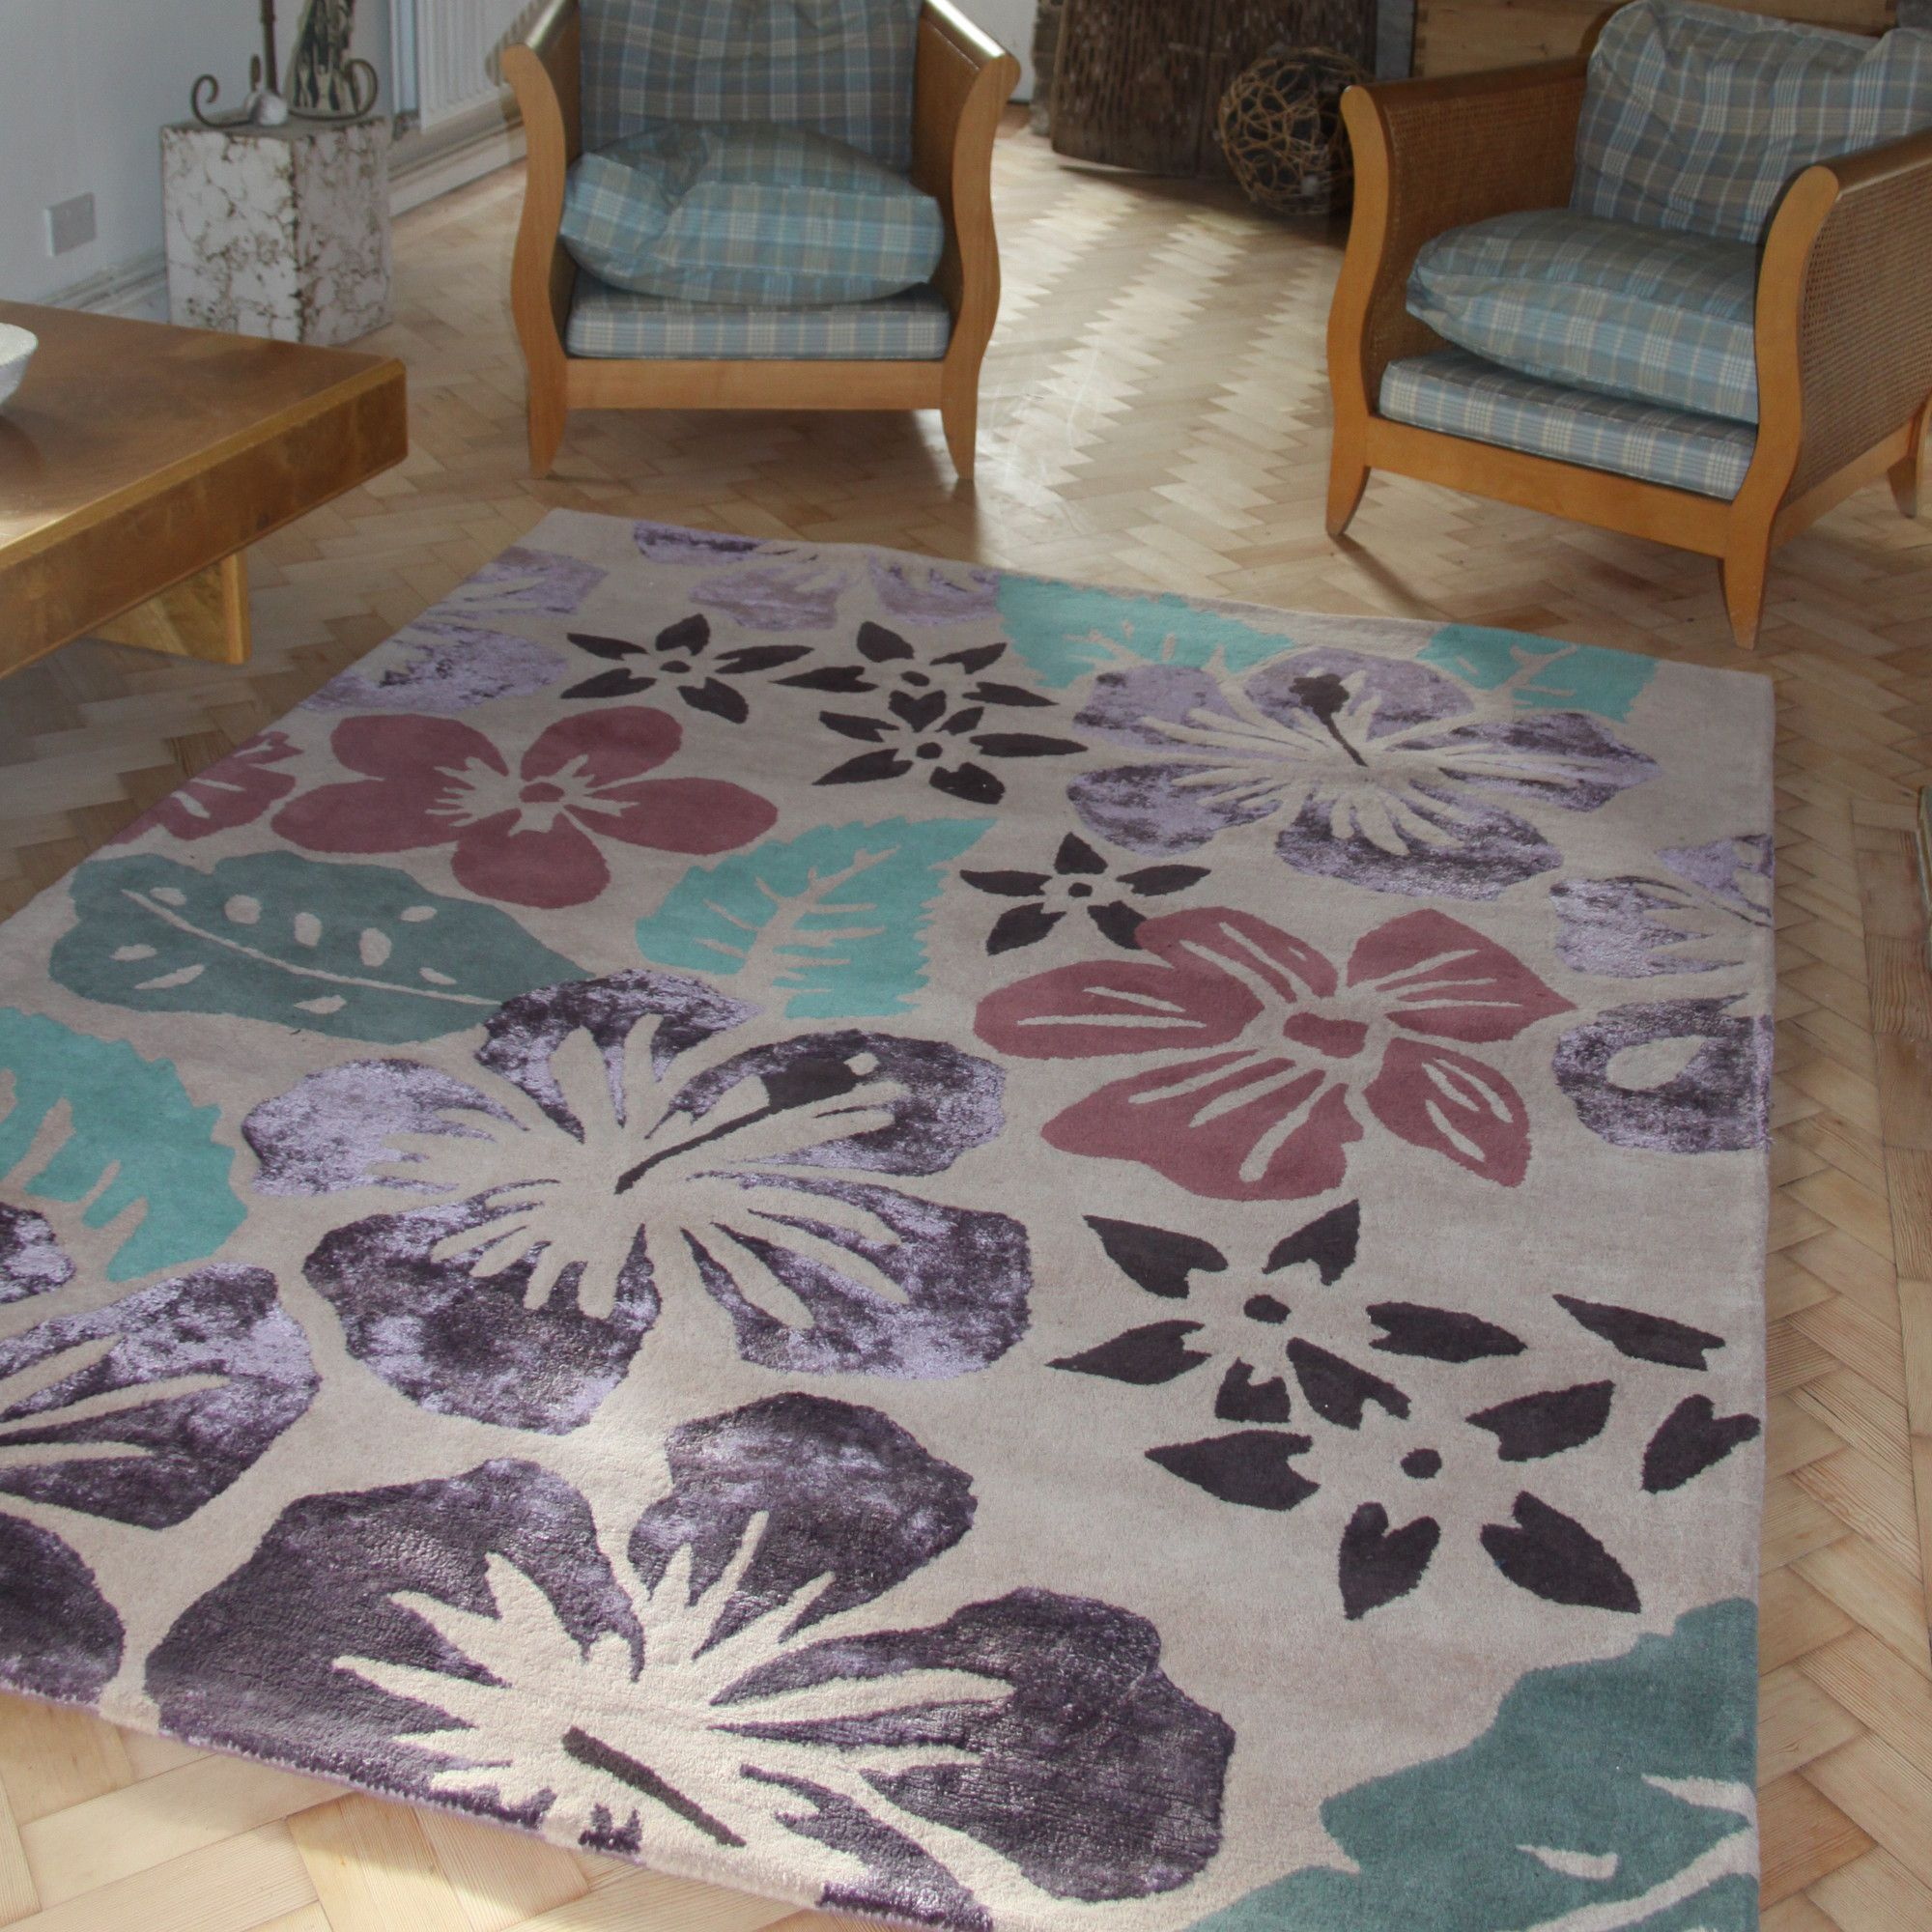 Anna V Rugs Hibiscus Contemporary Rectangular Rug - 180cm x 240cm at Tesco Direct